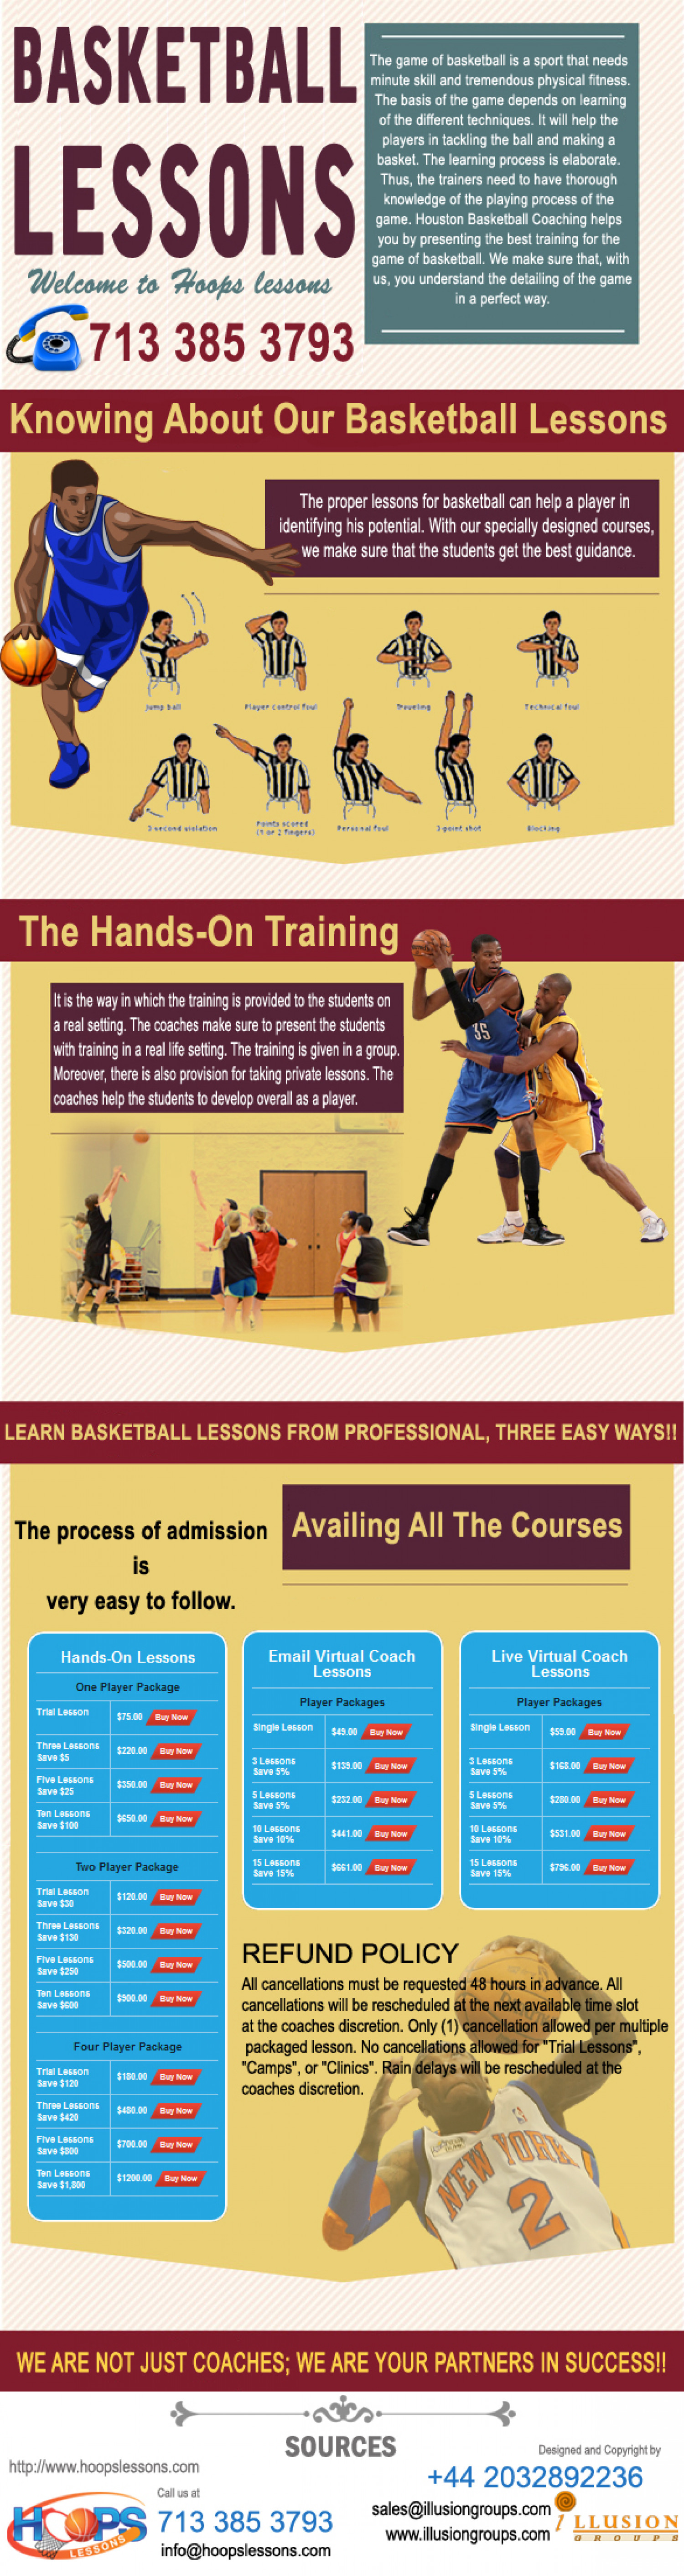 Benefits Of Basketball Camp Over Private Coaching Sessions Infographic